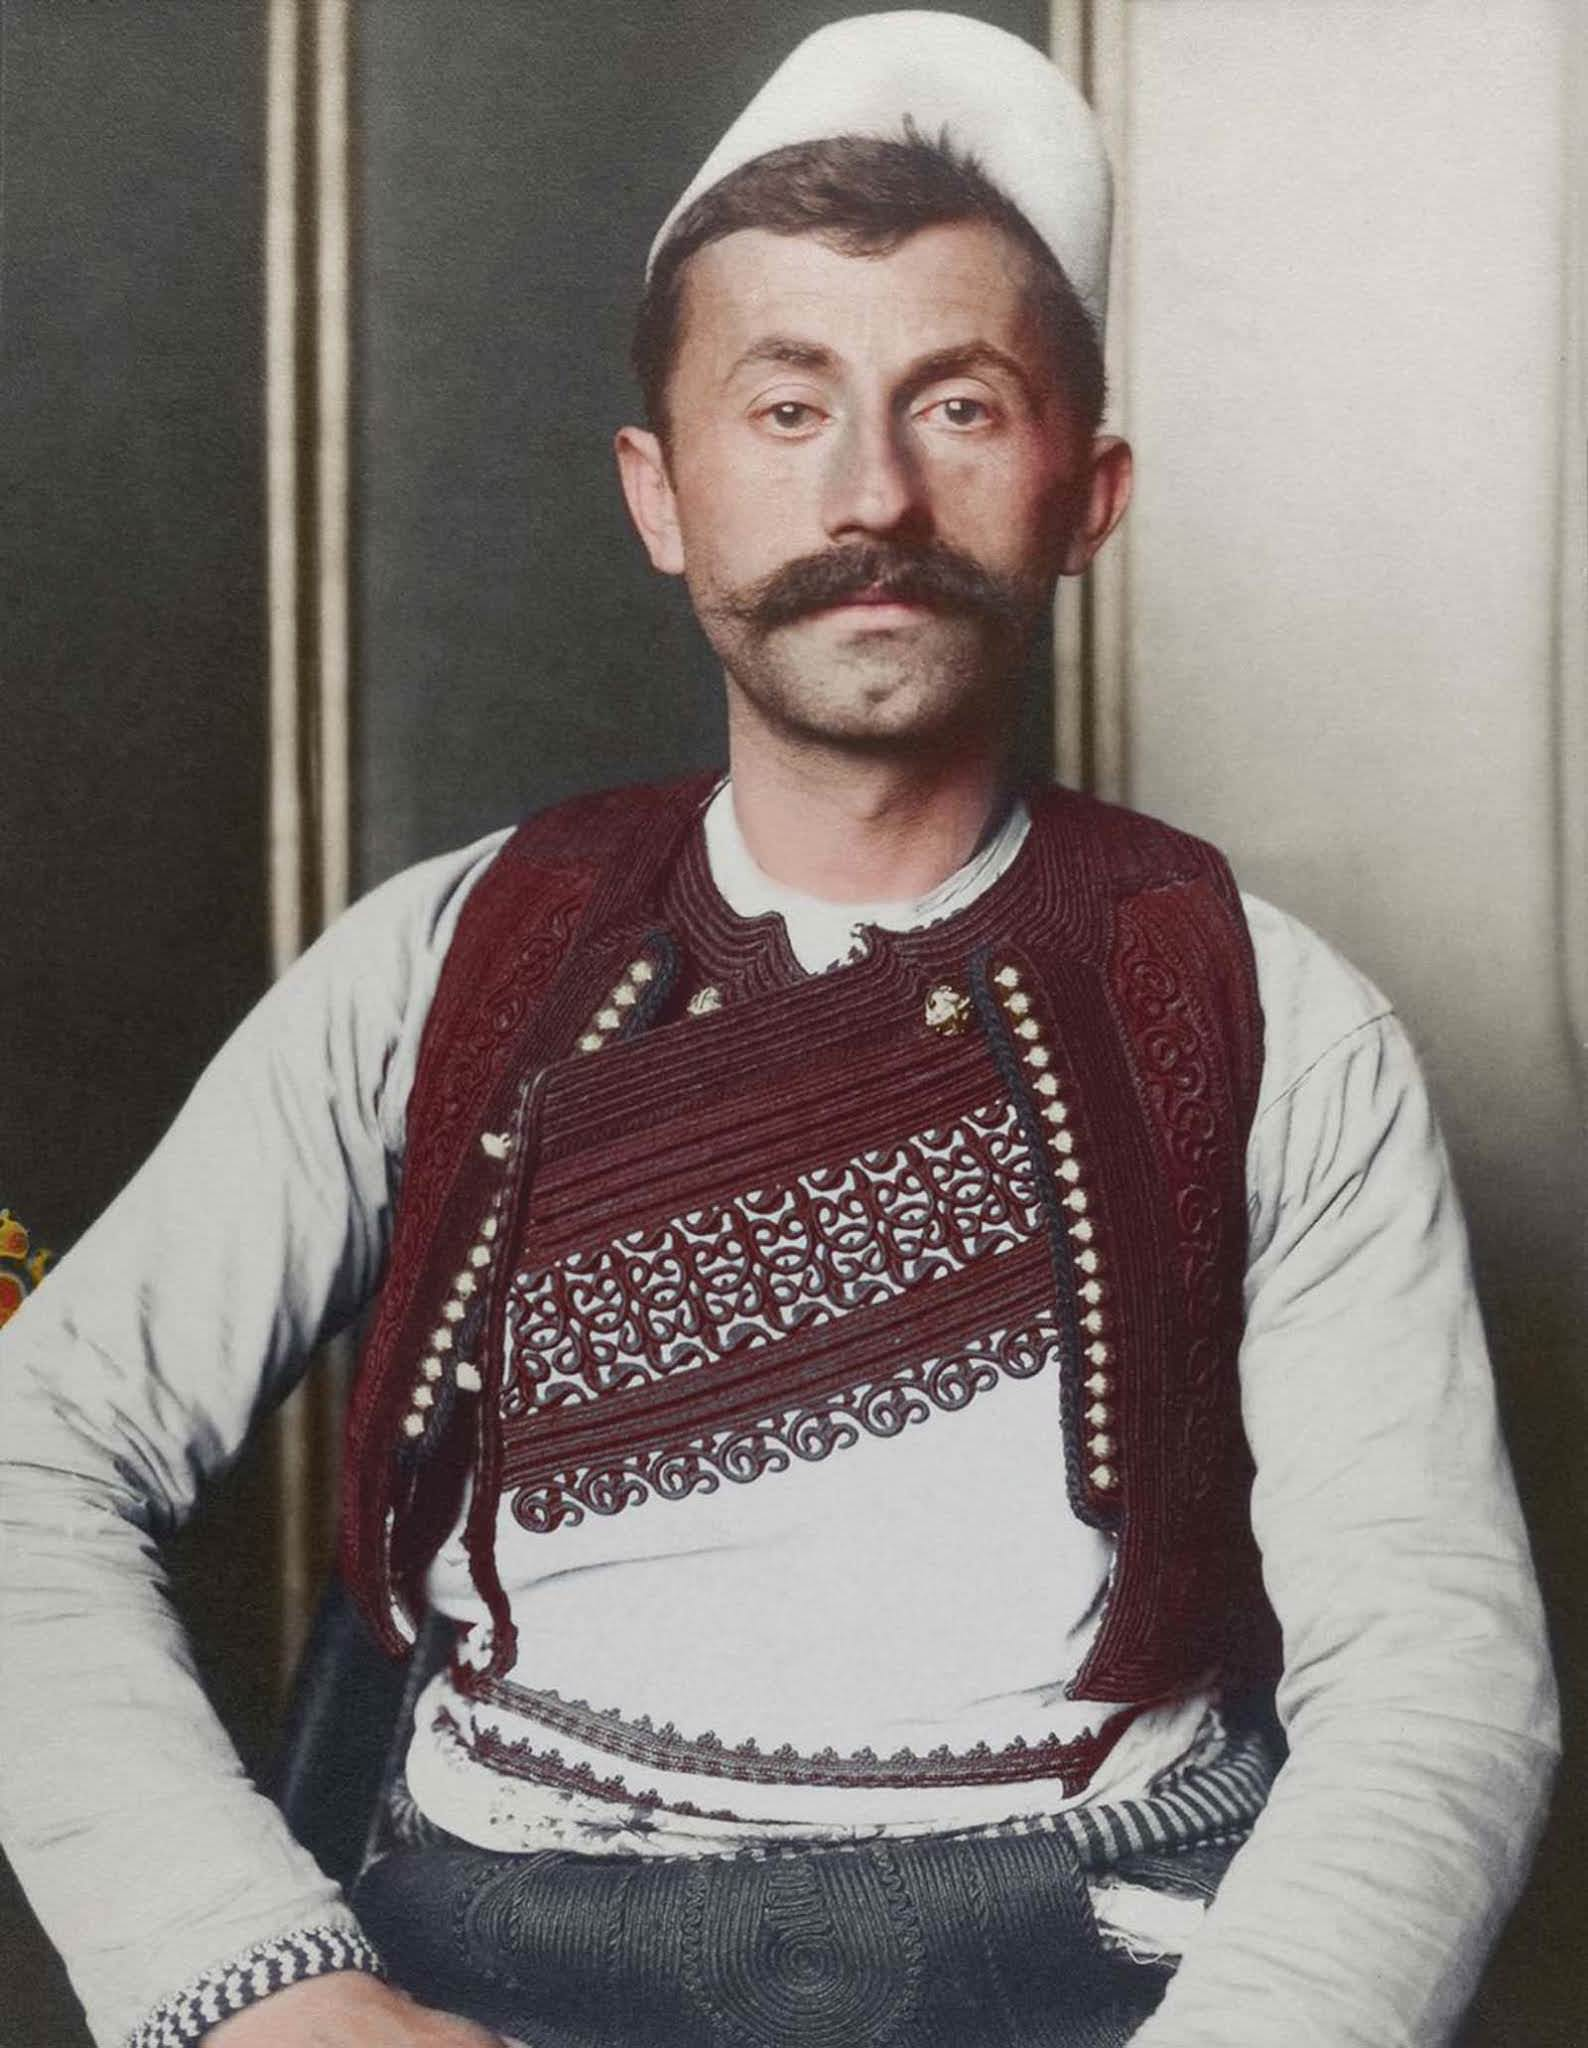 """Albanian soldier."""" The truncated brimless felt cap is known as a qeleshe, whose shape was largely determined by region and molded to one's head. The vest, known as a jelek or xhamadan, was decorated with embroidered braids of silk or cotton. Its color and decoration denoted the region where the wear"""